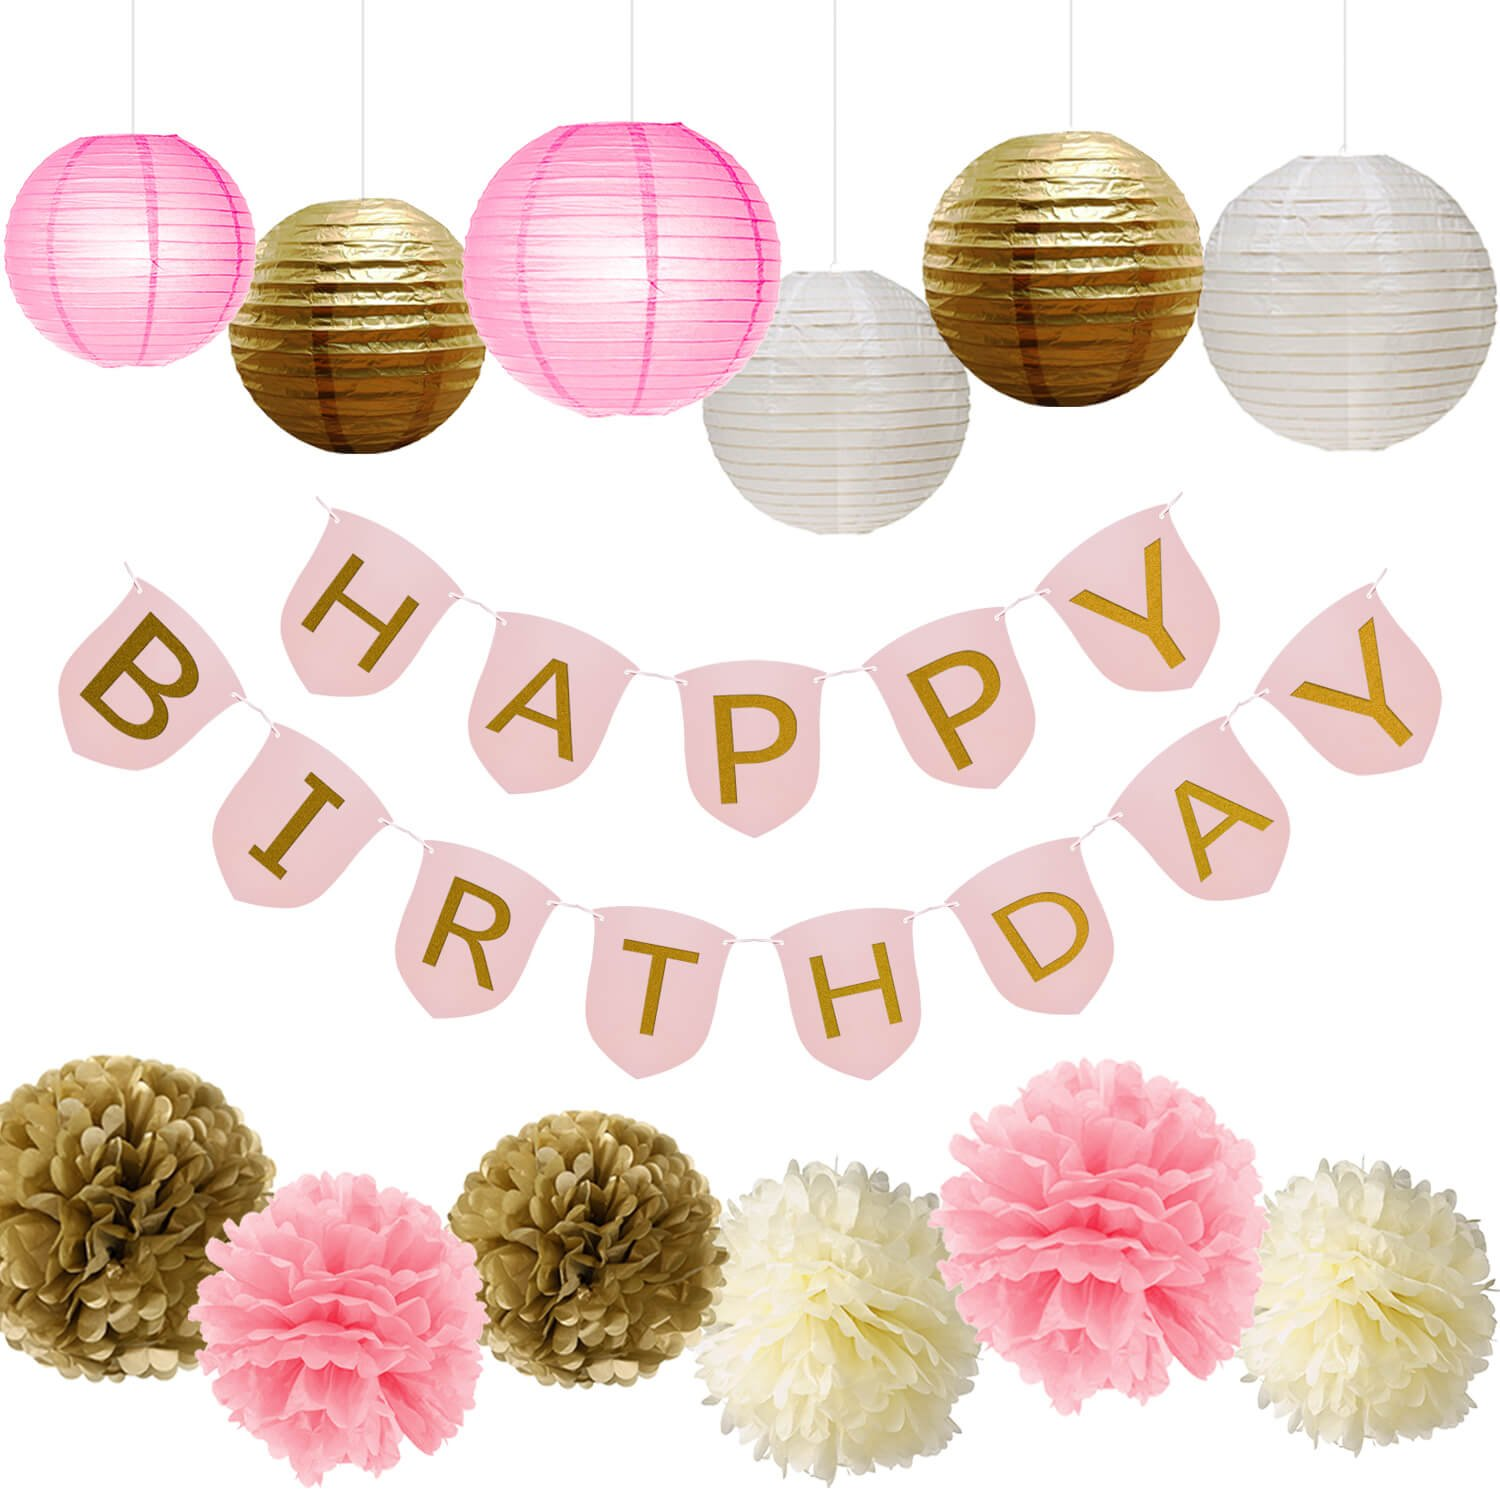 Paxcoo Pink and Gold Party Supplies for Birthday Decorations (Pink and Gold Party Supplies with Birthday Banner)